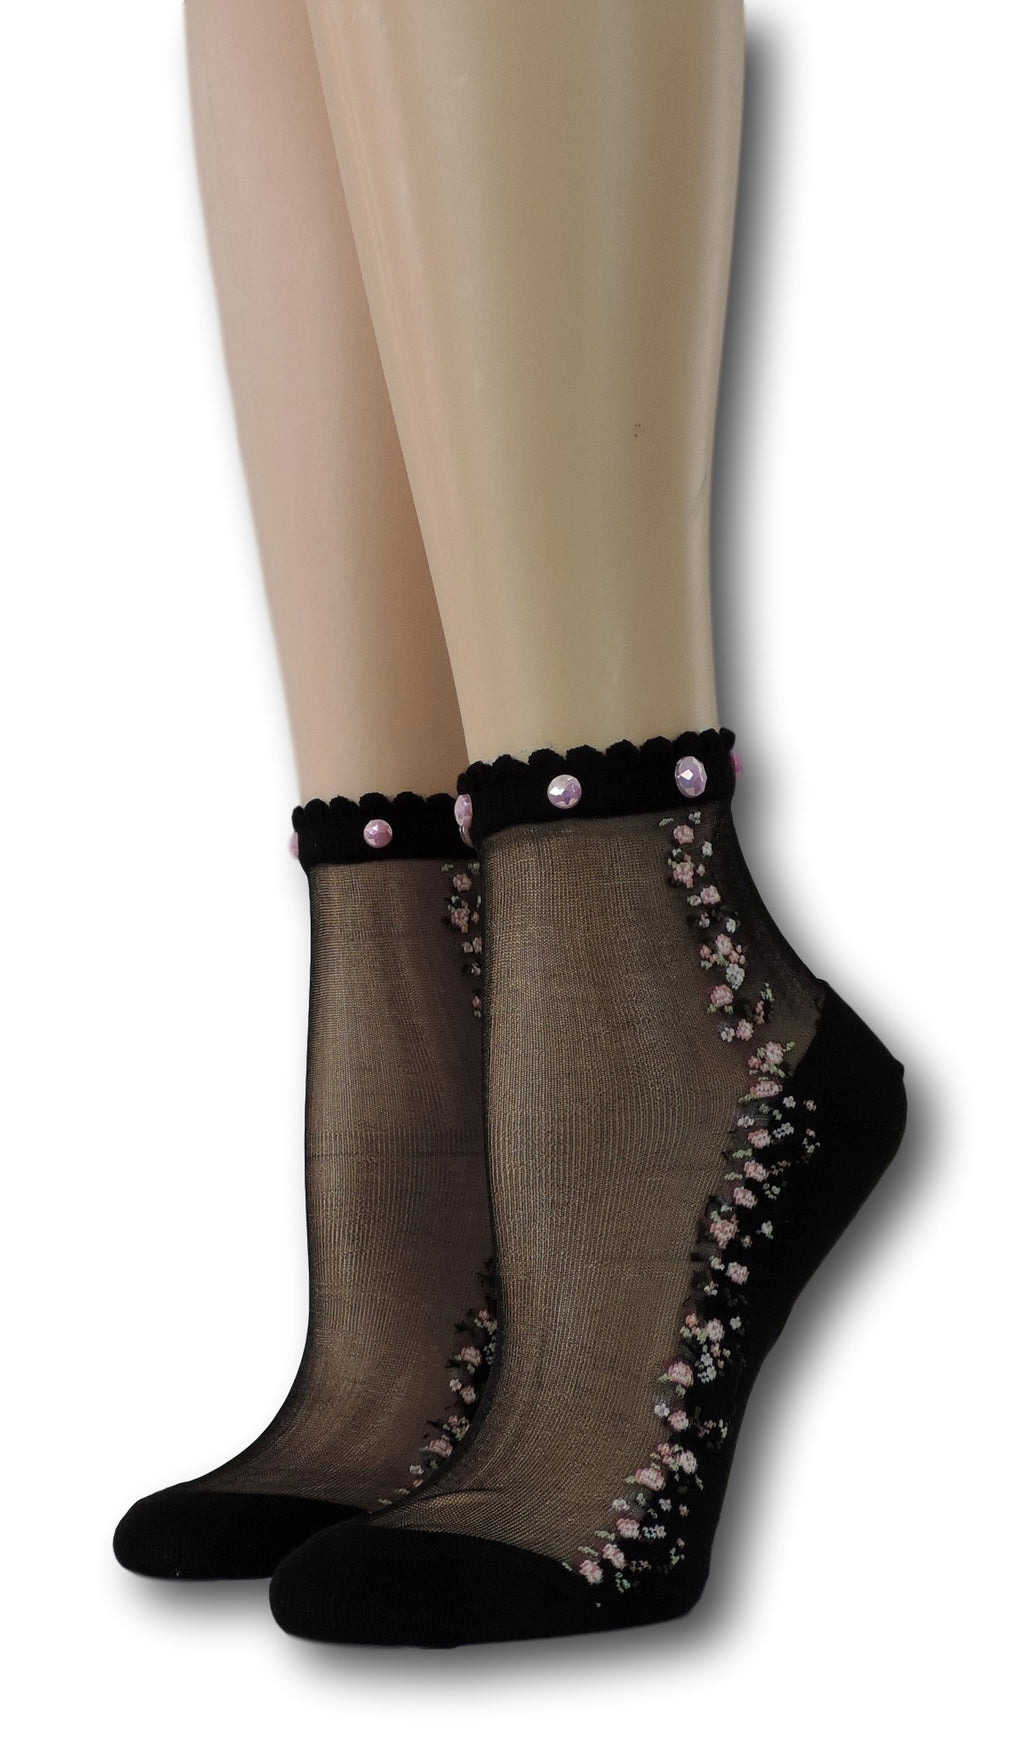 Ivory Blooming Sheer Socks with beads